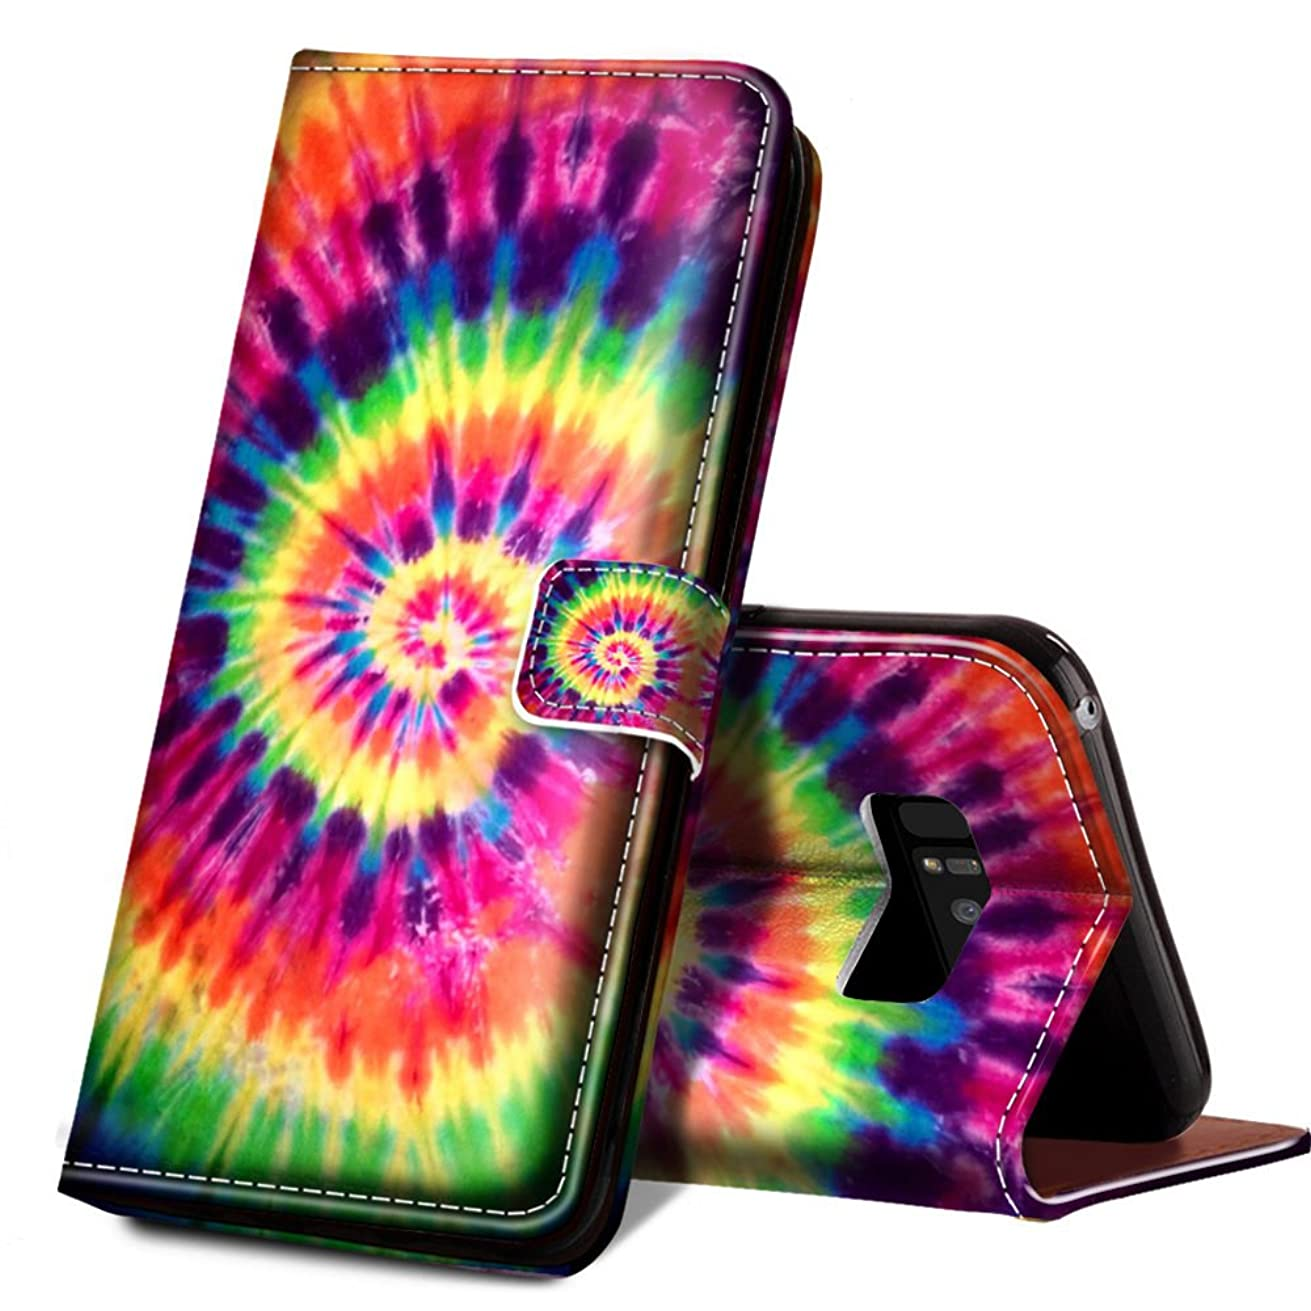 ONSPACE Wallet Case For Samsung Galaxy Note 8, Magnetic Protective Cover Case Card Slots and Wrist Strap, Custom Printed Colorful Tie Dye Wallet Case, PU leather Stand Feature Galaxy Note 8 Case